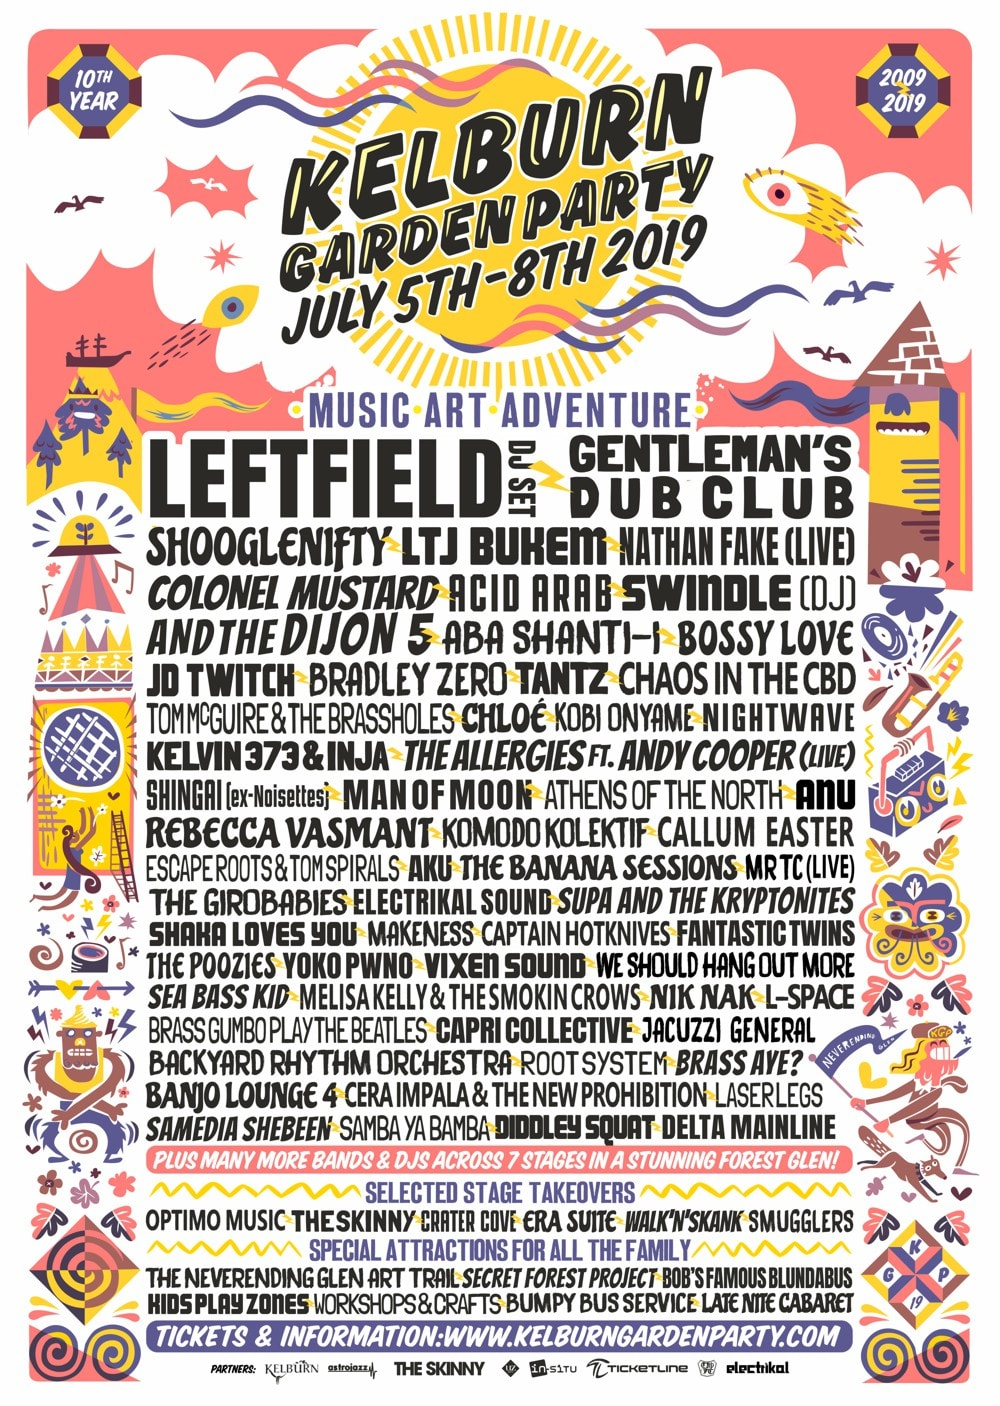 Kelburn Garden Party 2019 flyer